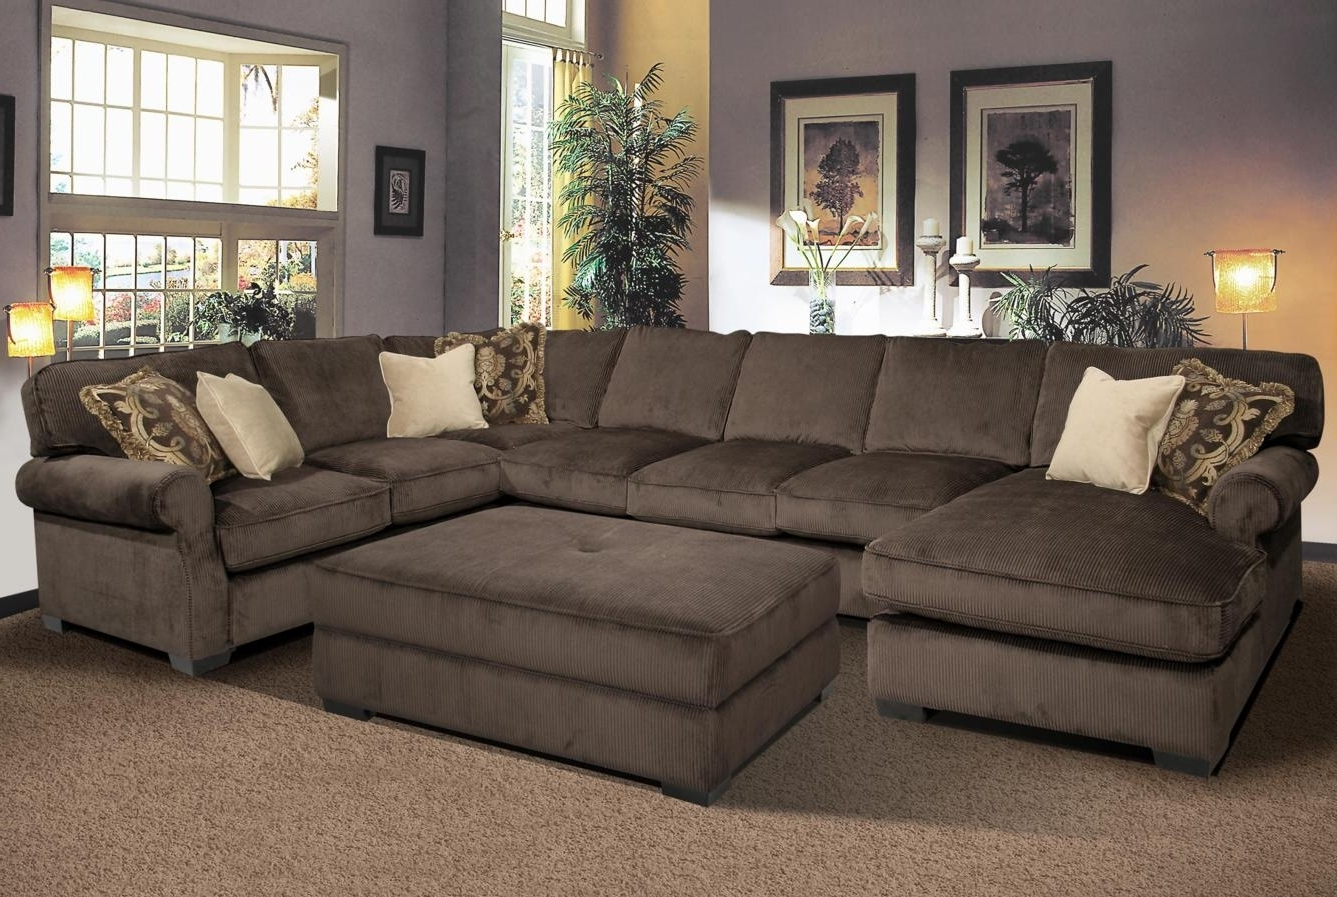 Inexpensive Sectional Sofas For Small Spaces For Well Liked Stylish Inexpensive Sectional Sofas For Small Spaces (Gallery 15 of 20)